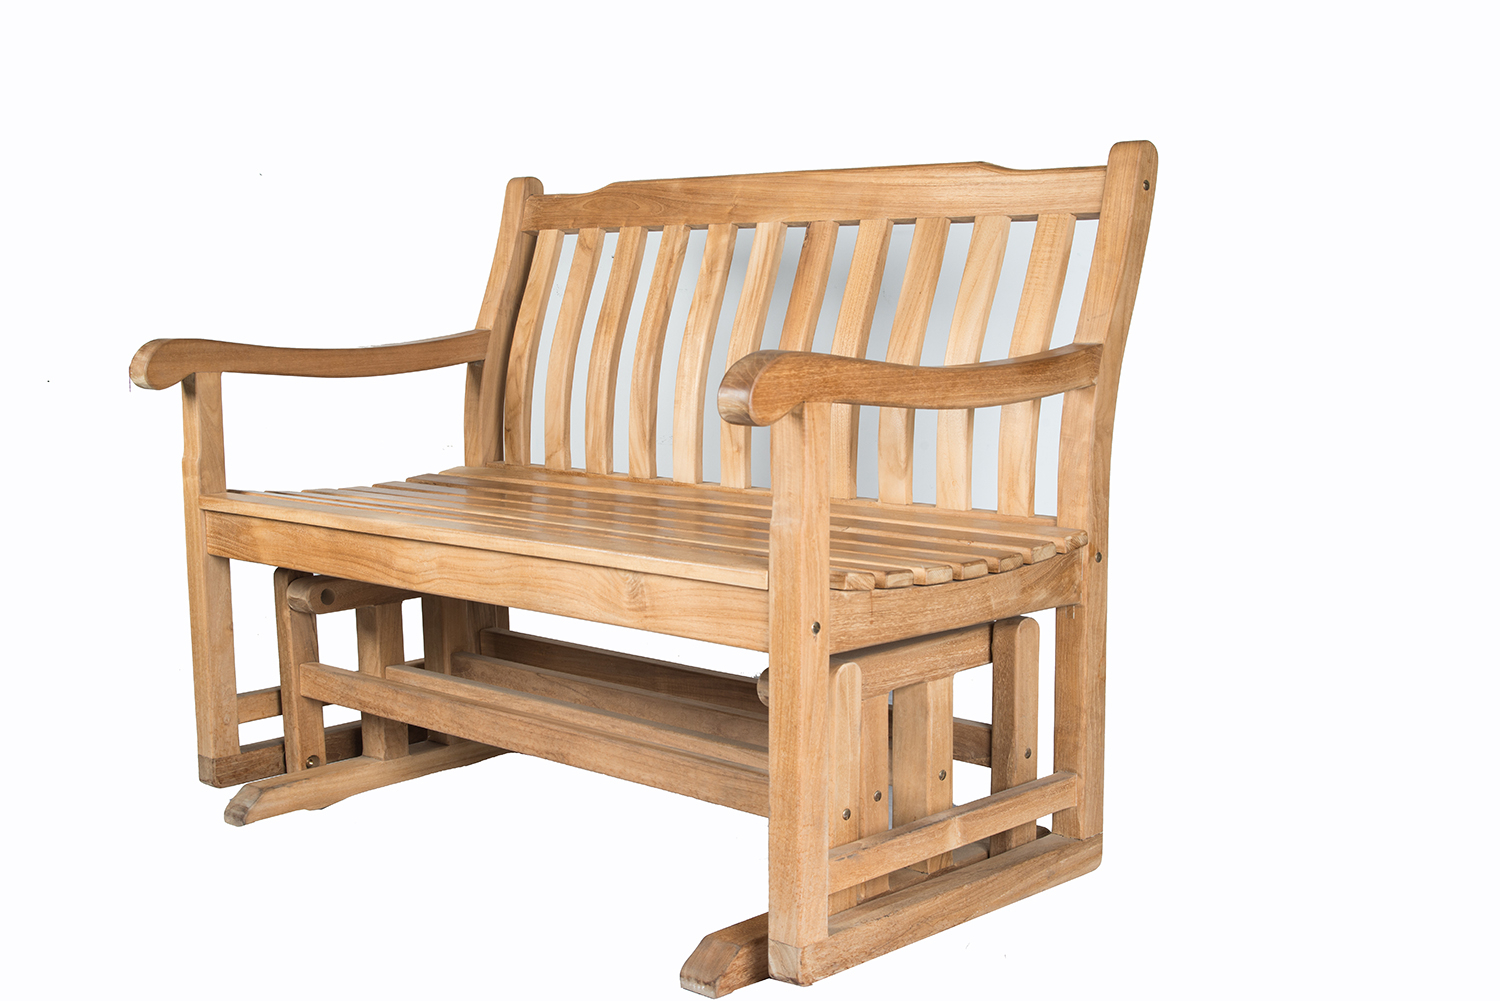 Shop For Dewata Classic Teak Wood B+ Class Glider Bench In Classic Adirondack Glider Benches (View 18 of 25)